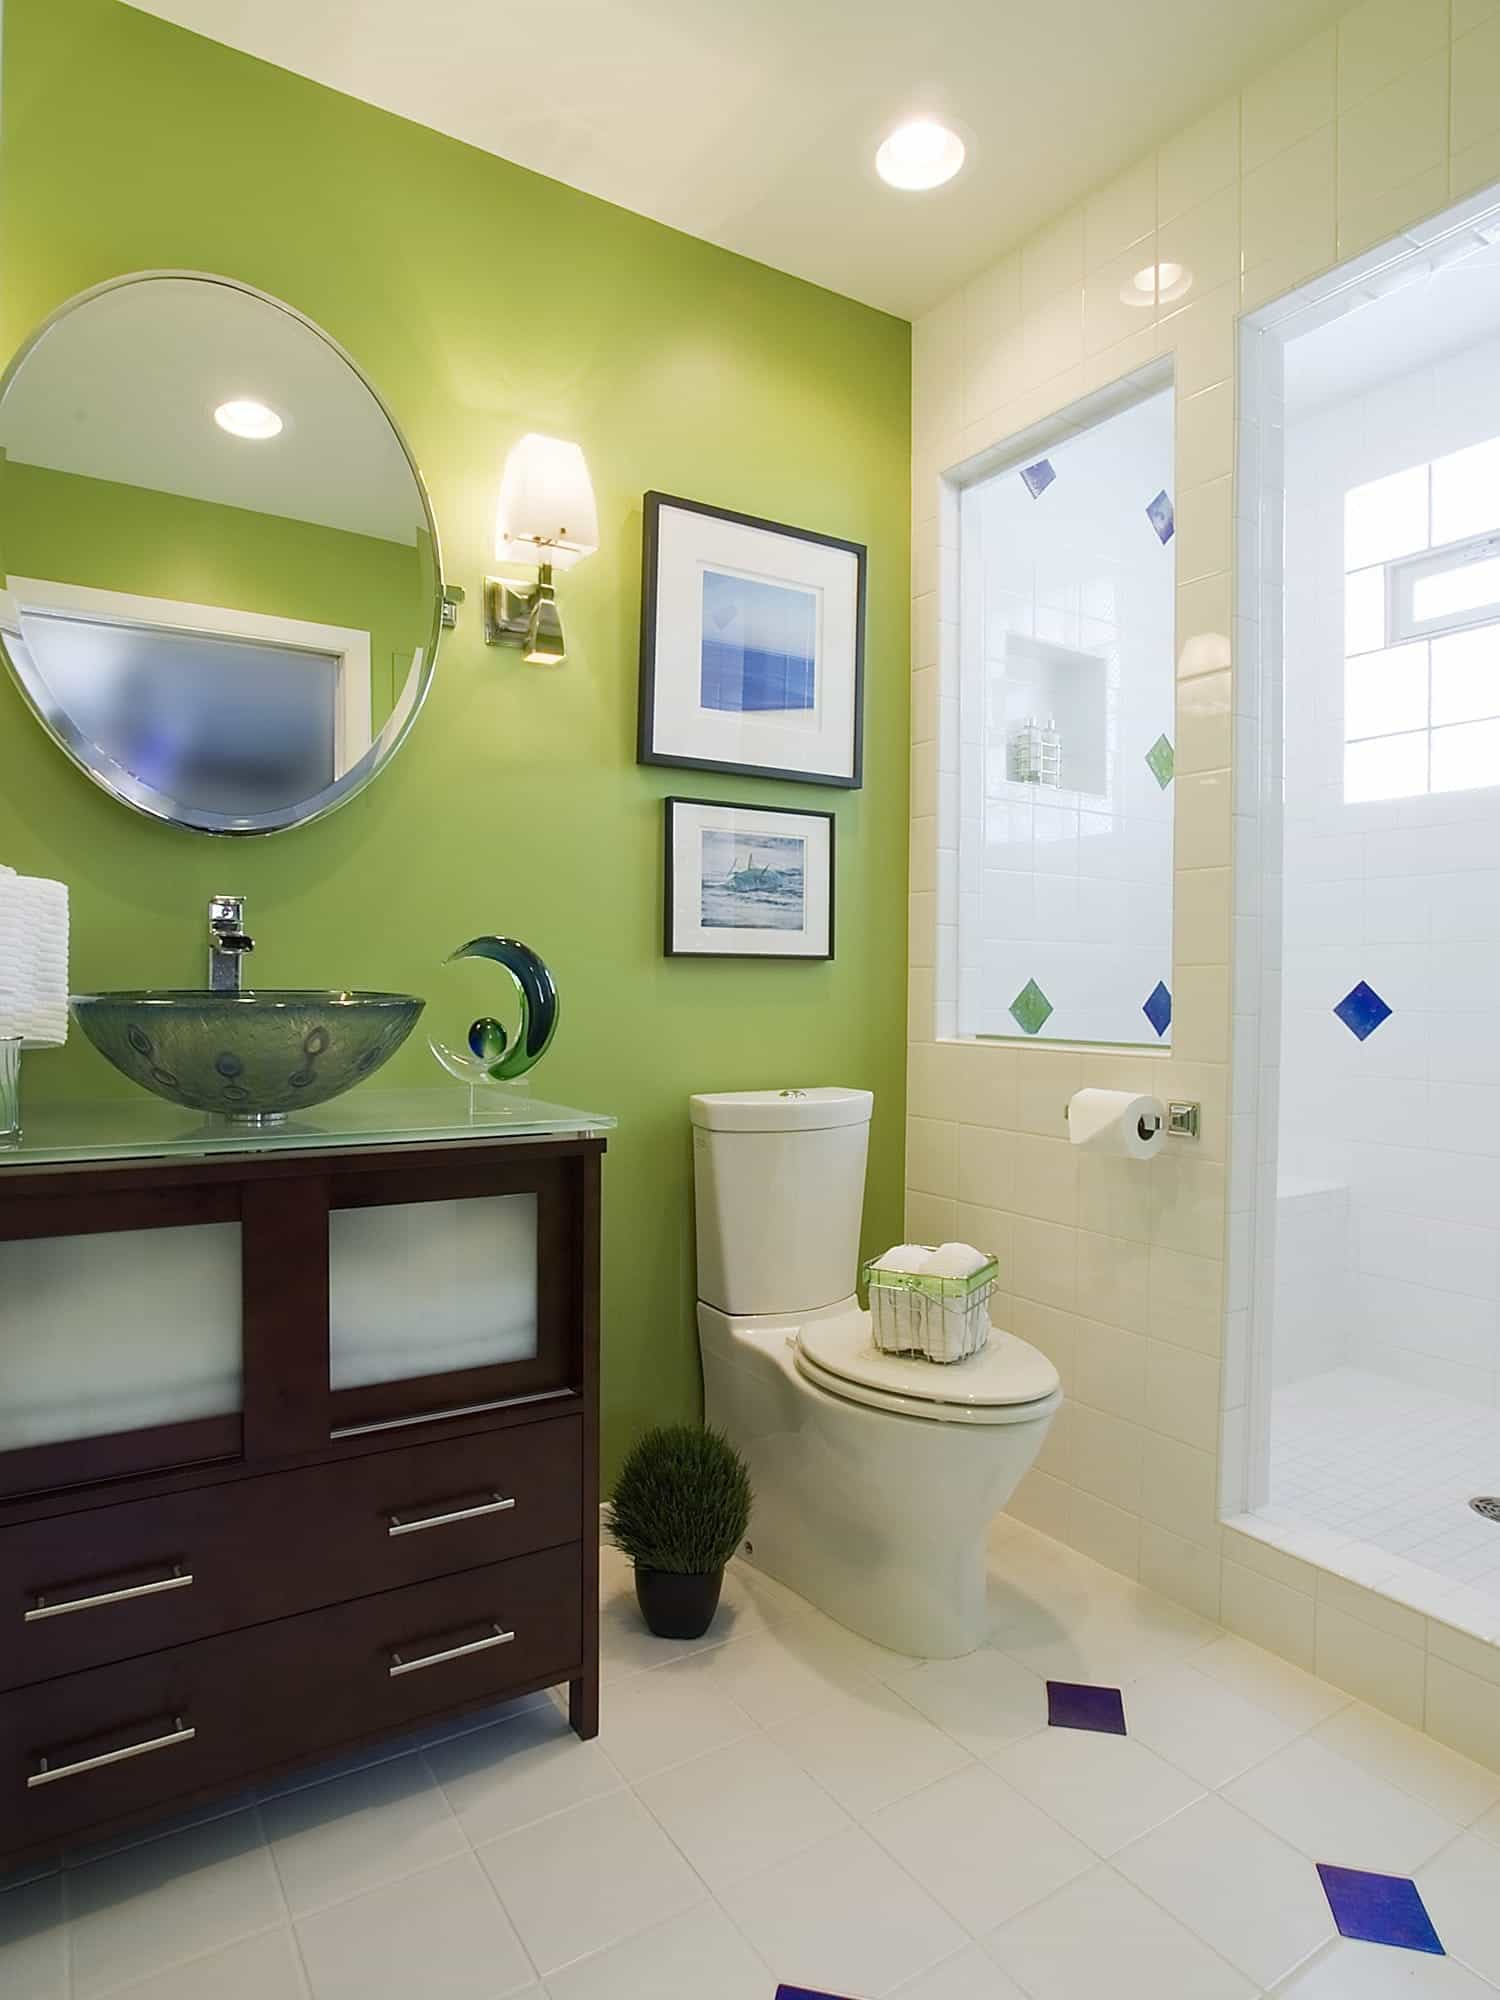 Green Eclectic Bathroom Decoration With Round Mirror And Vessel Sink (Image 8 of 12)